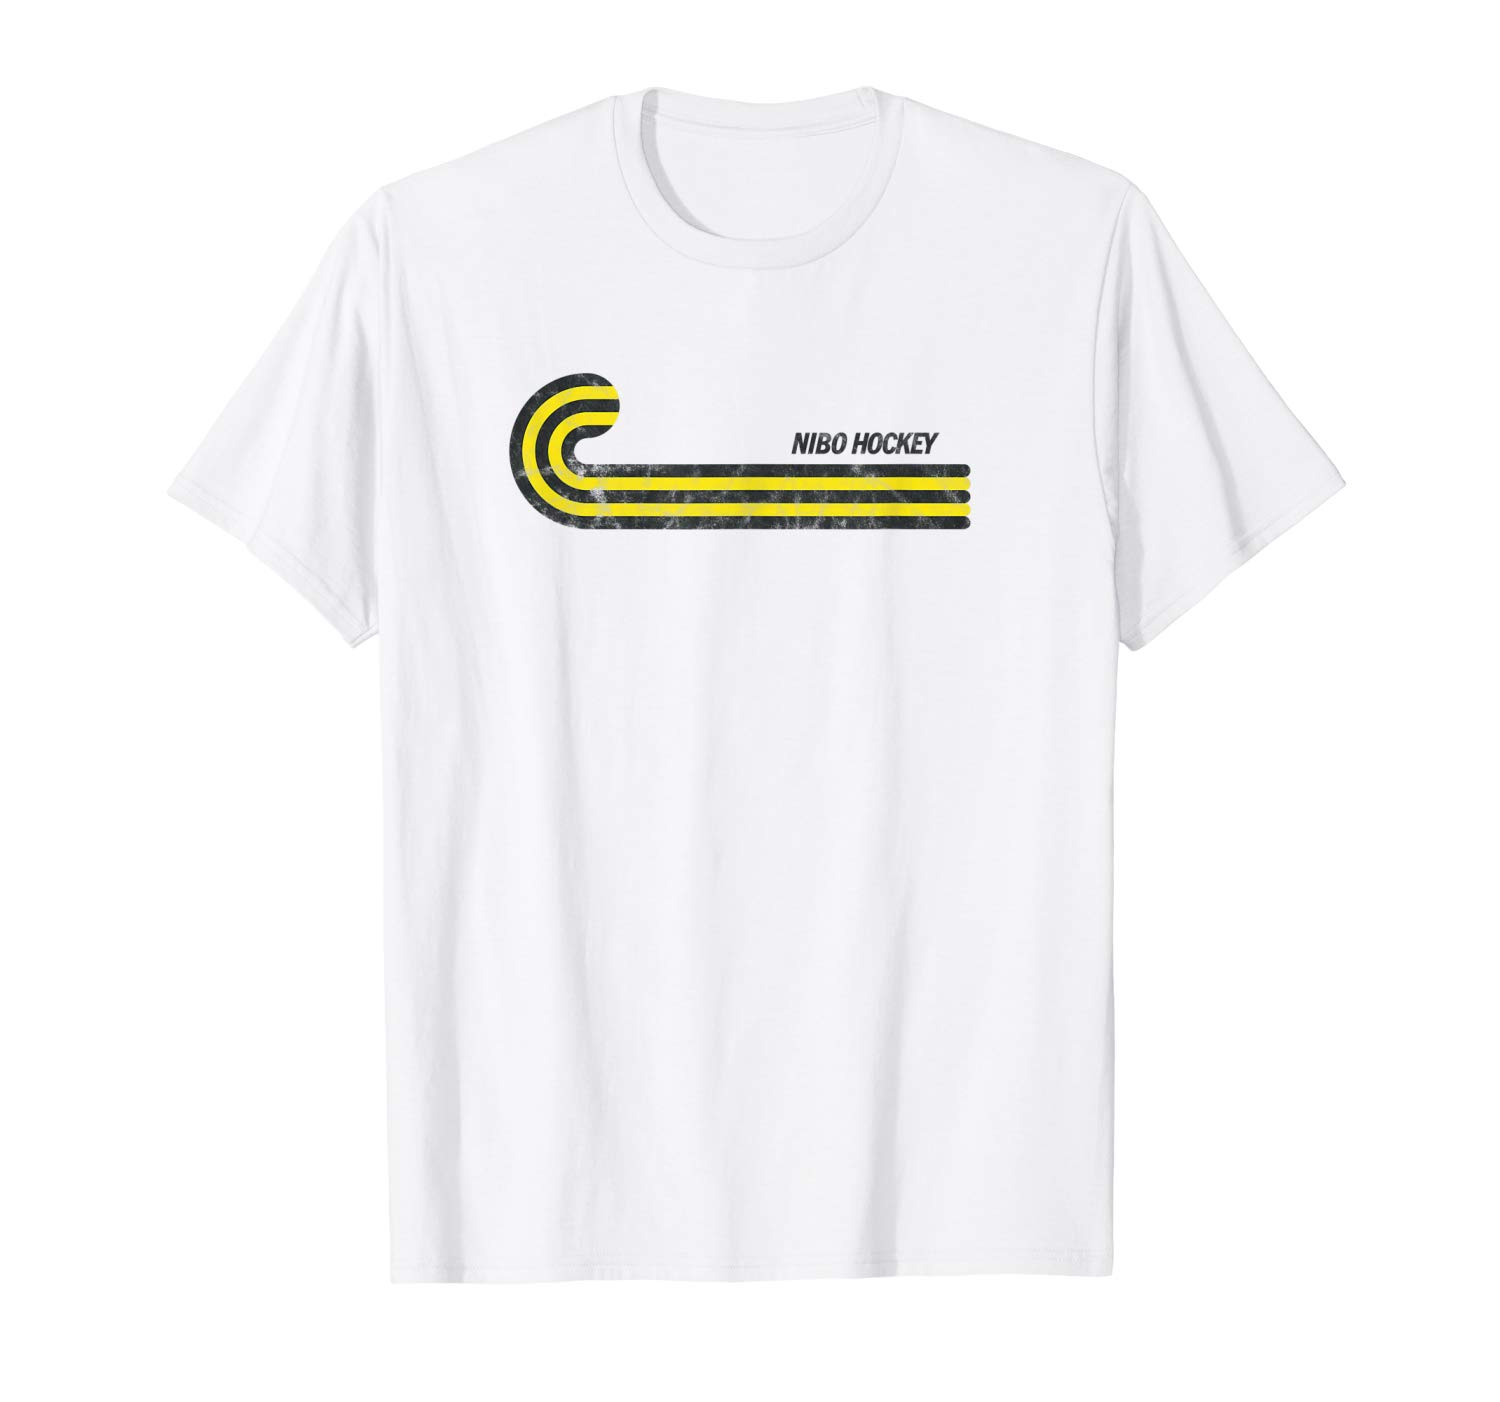 T-Shirt: Feldhockey Hockeystick Trainer Hockey Design T-Shirt